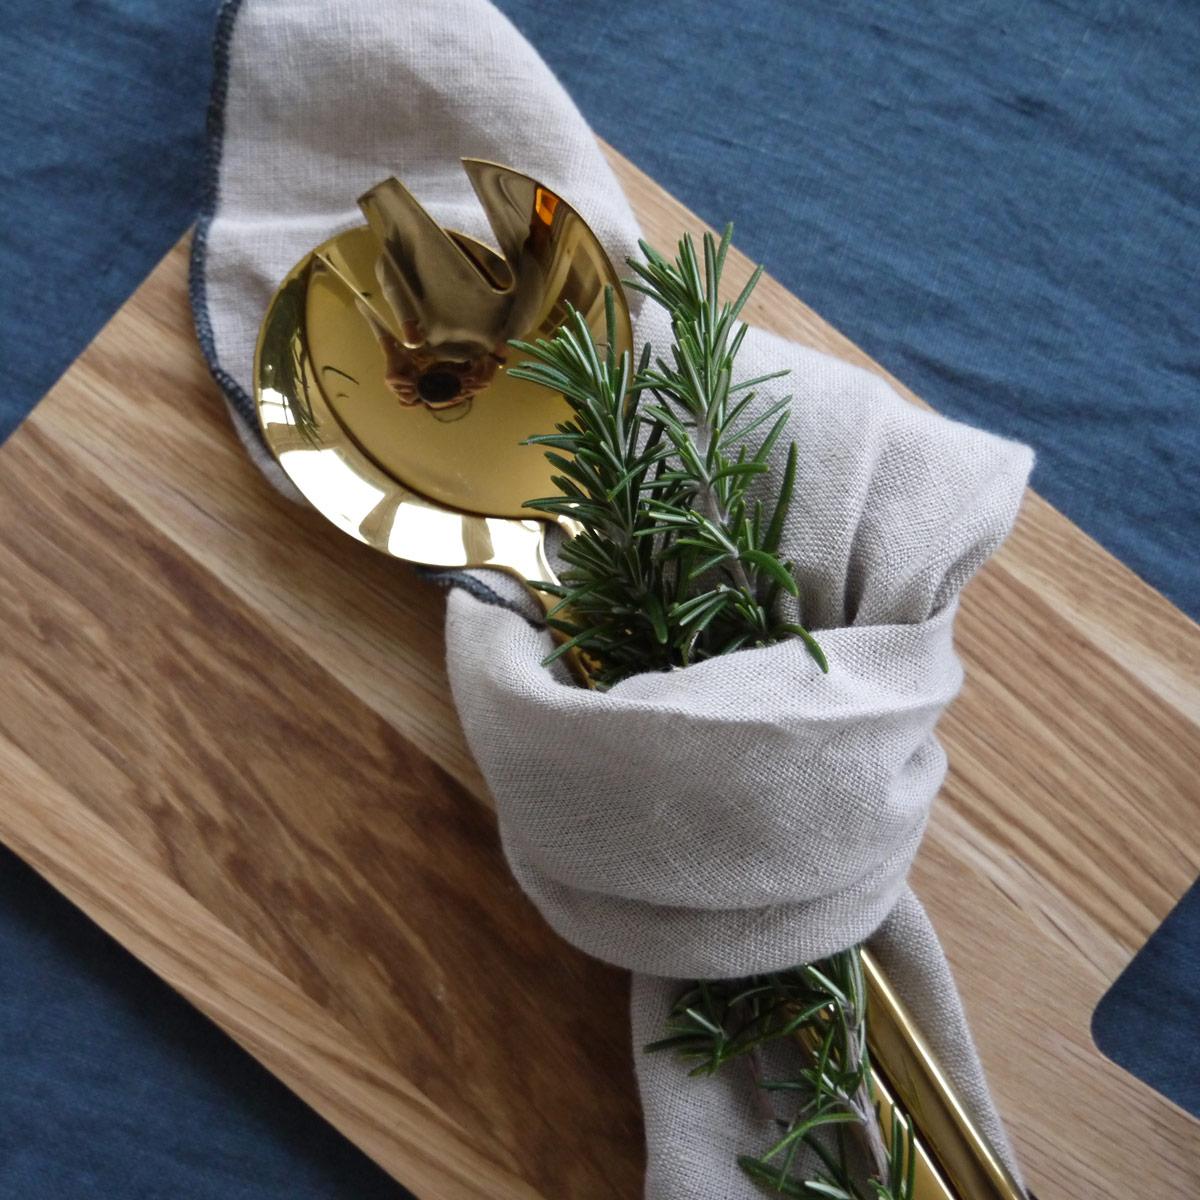 Todd-chopping-board-with-linen-napkin